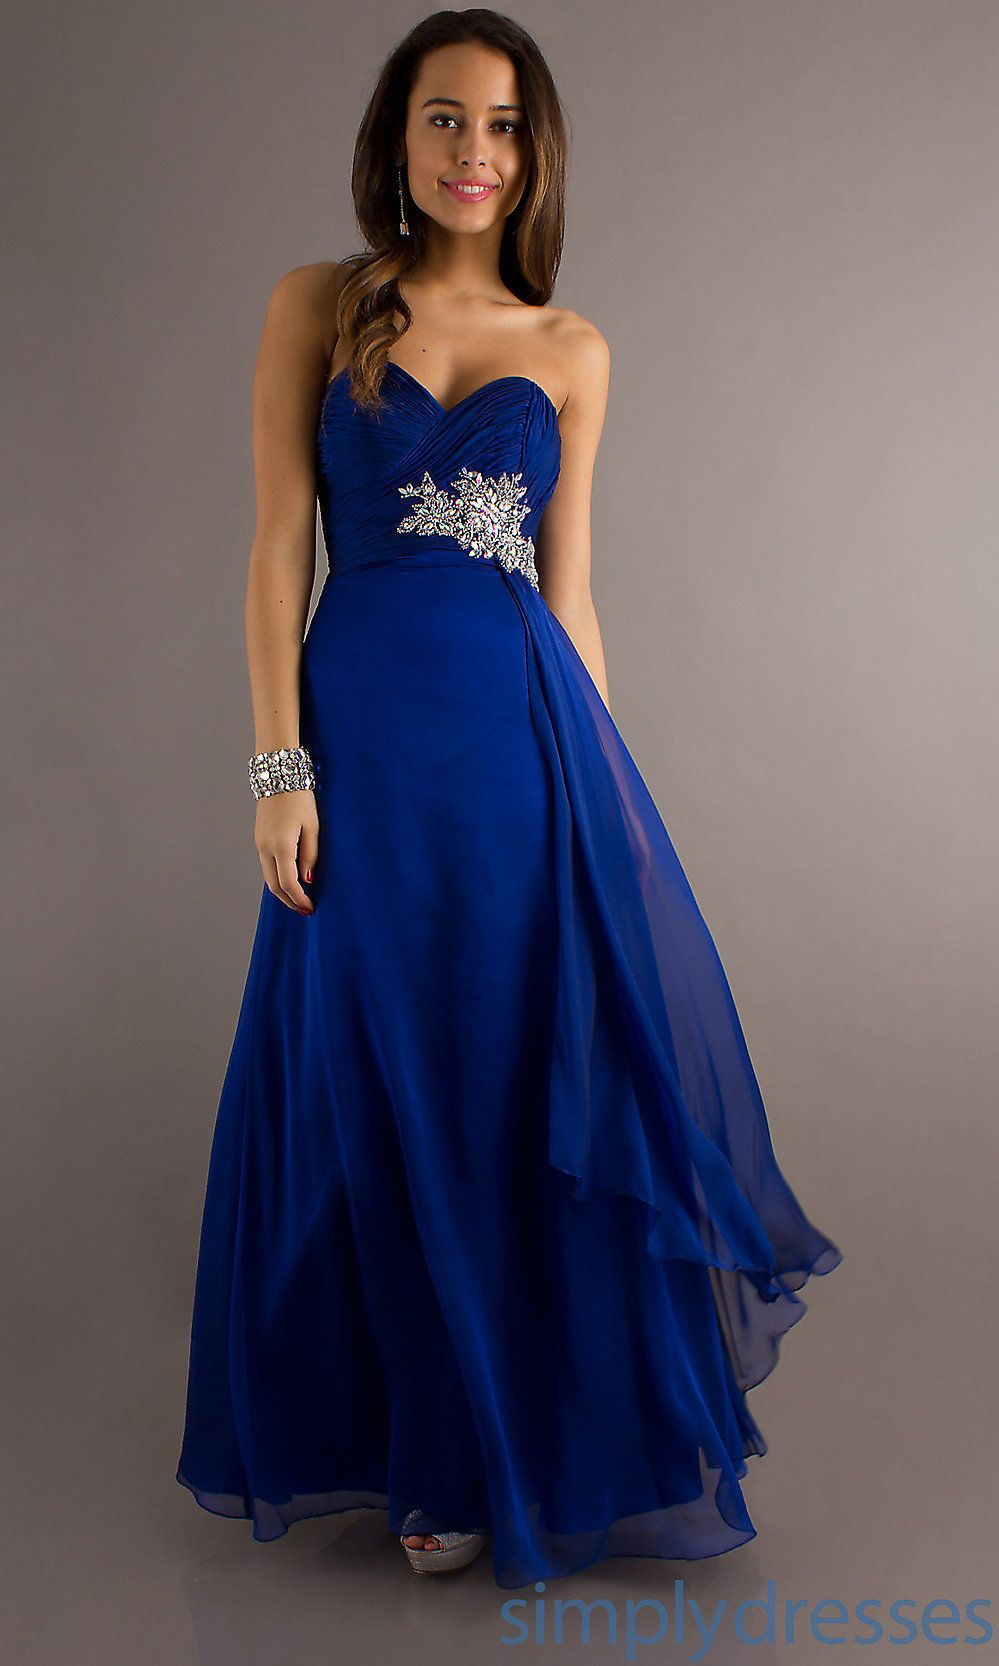 Bridesmaid dresses royal blue and silver 1 bridesmaid for Royal blue and silver wedding dresses